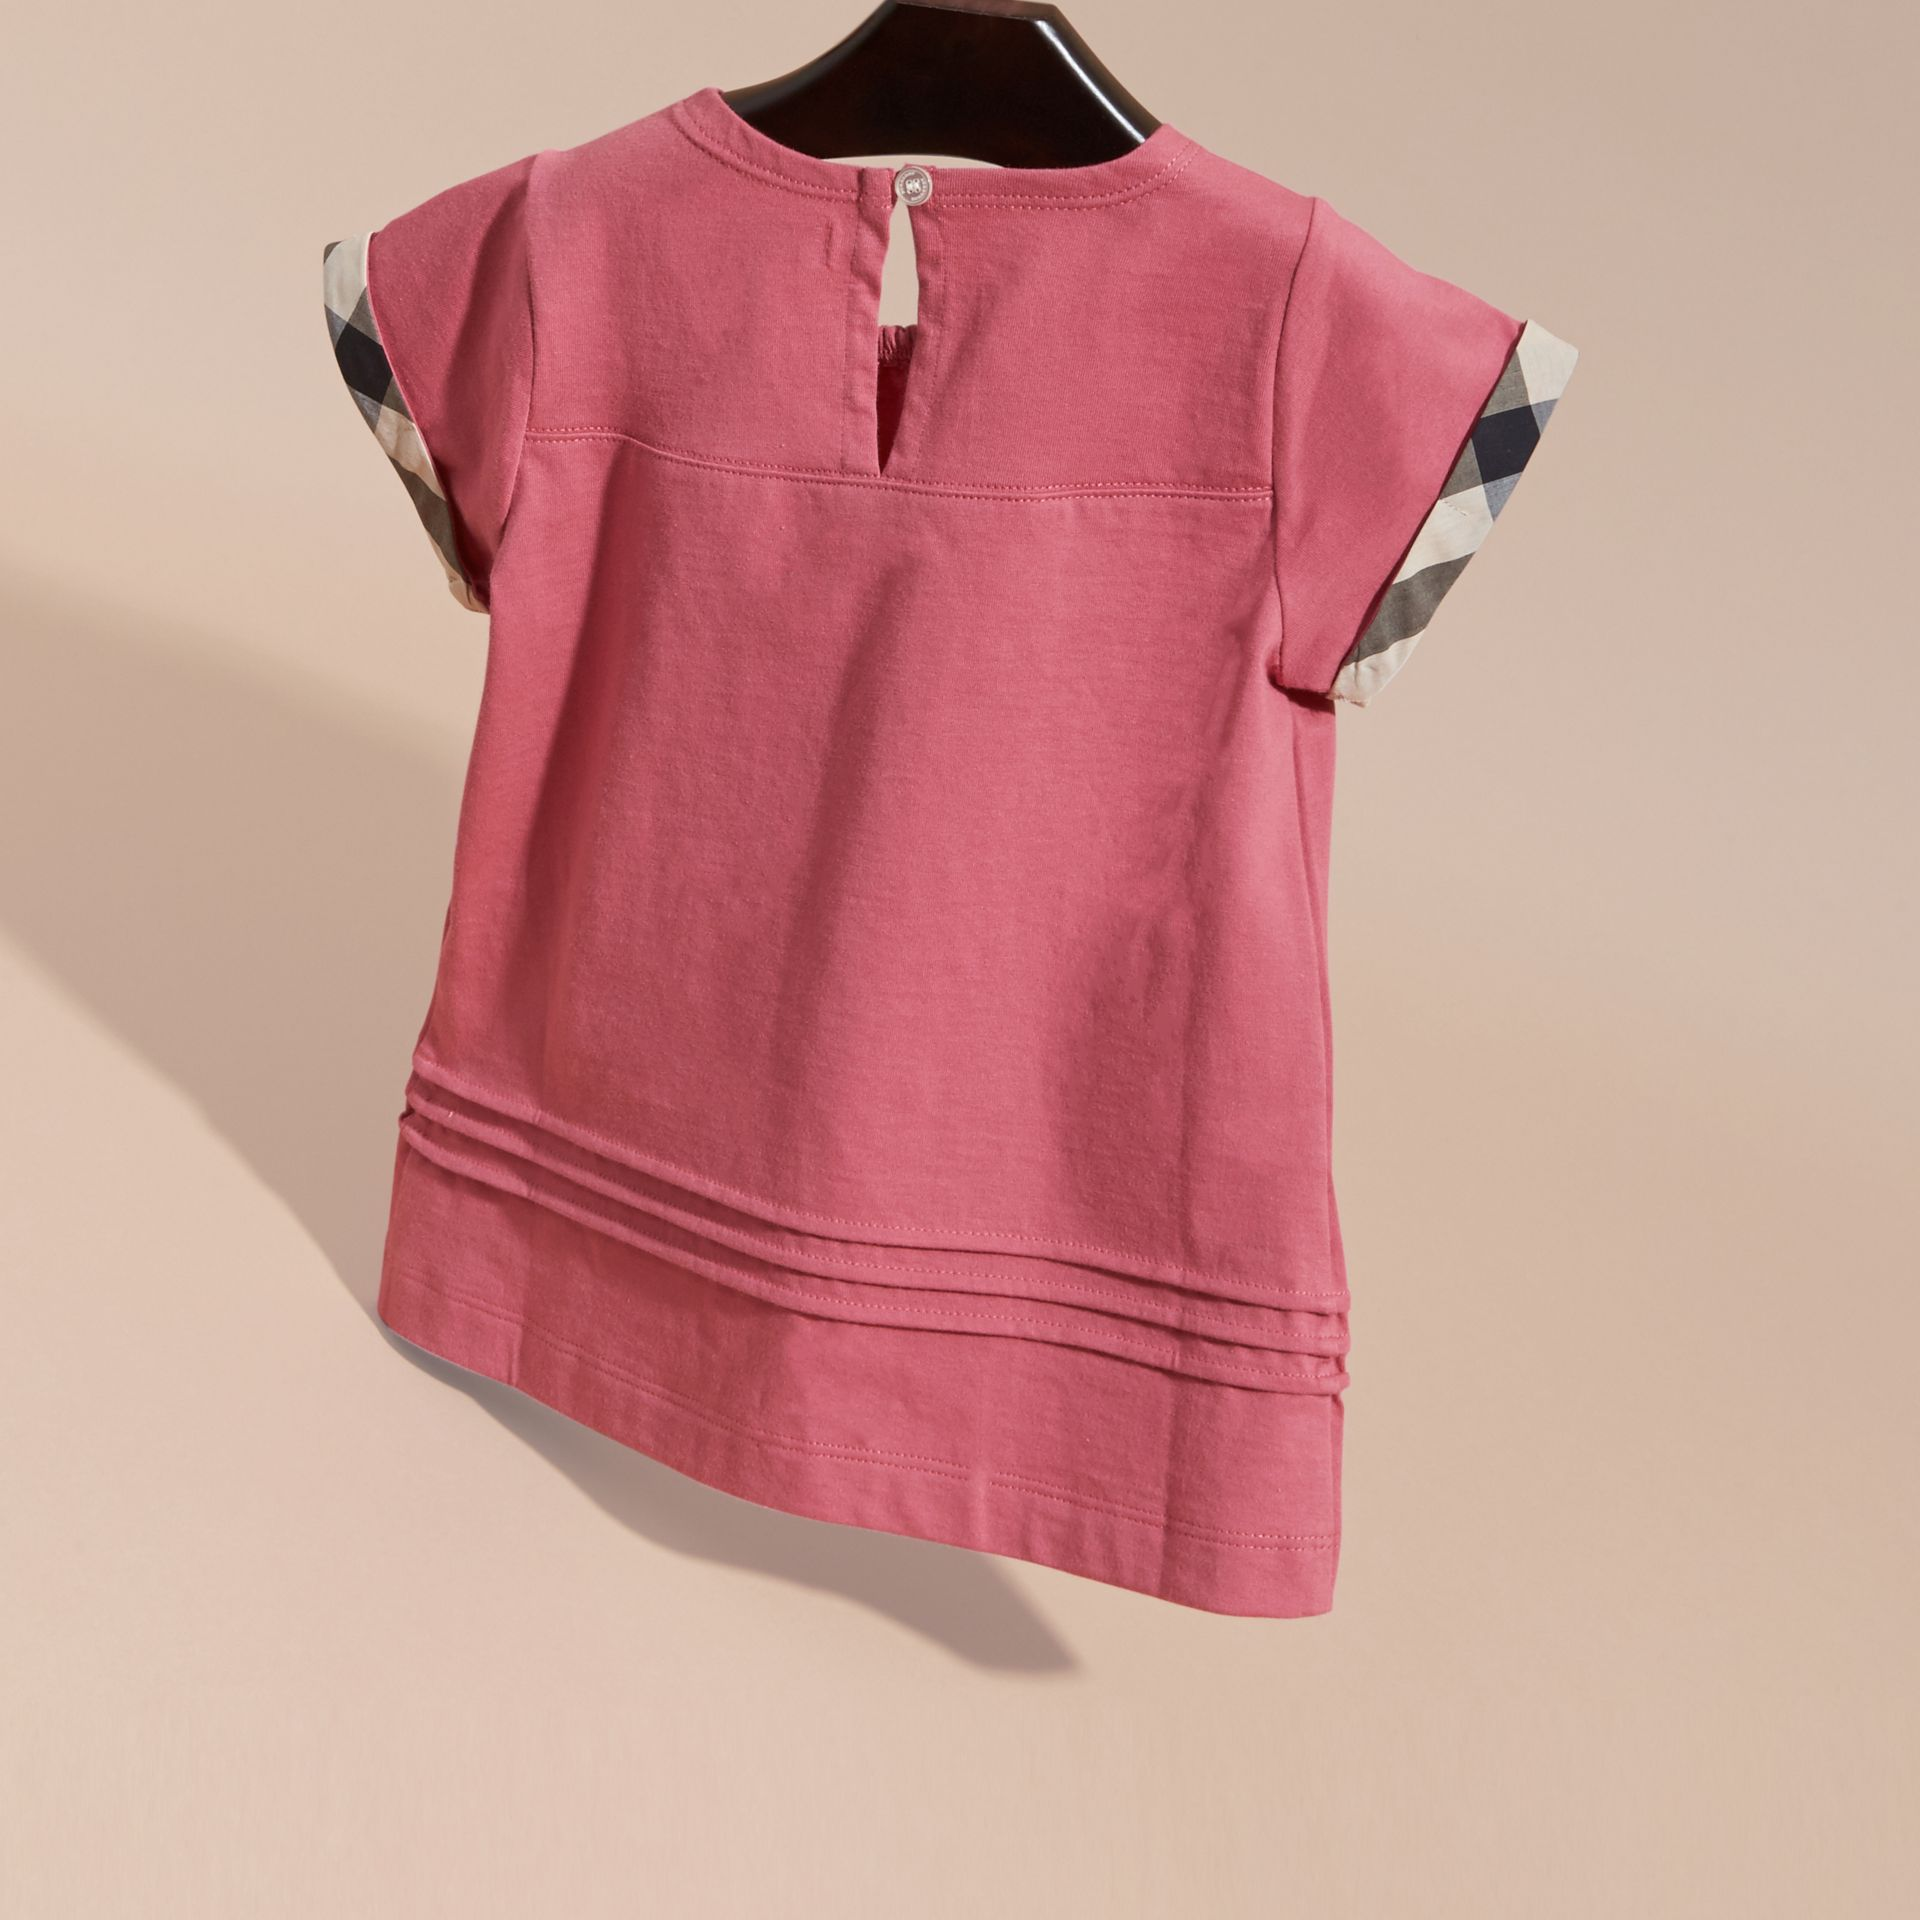 Pink azalea Pleat and Check Detail Cotton T-shirt Pink Azalea - gallery image 4